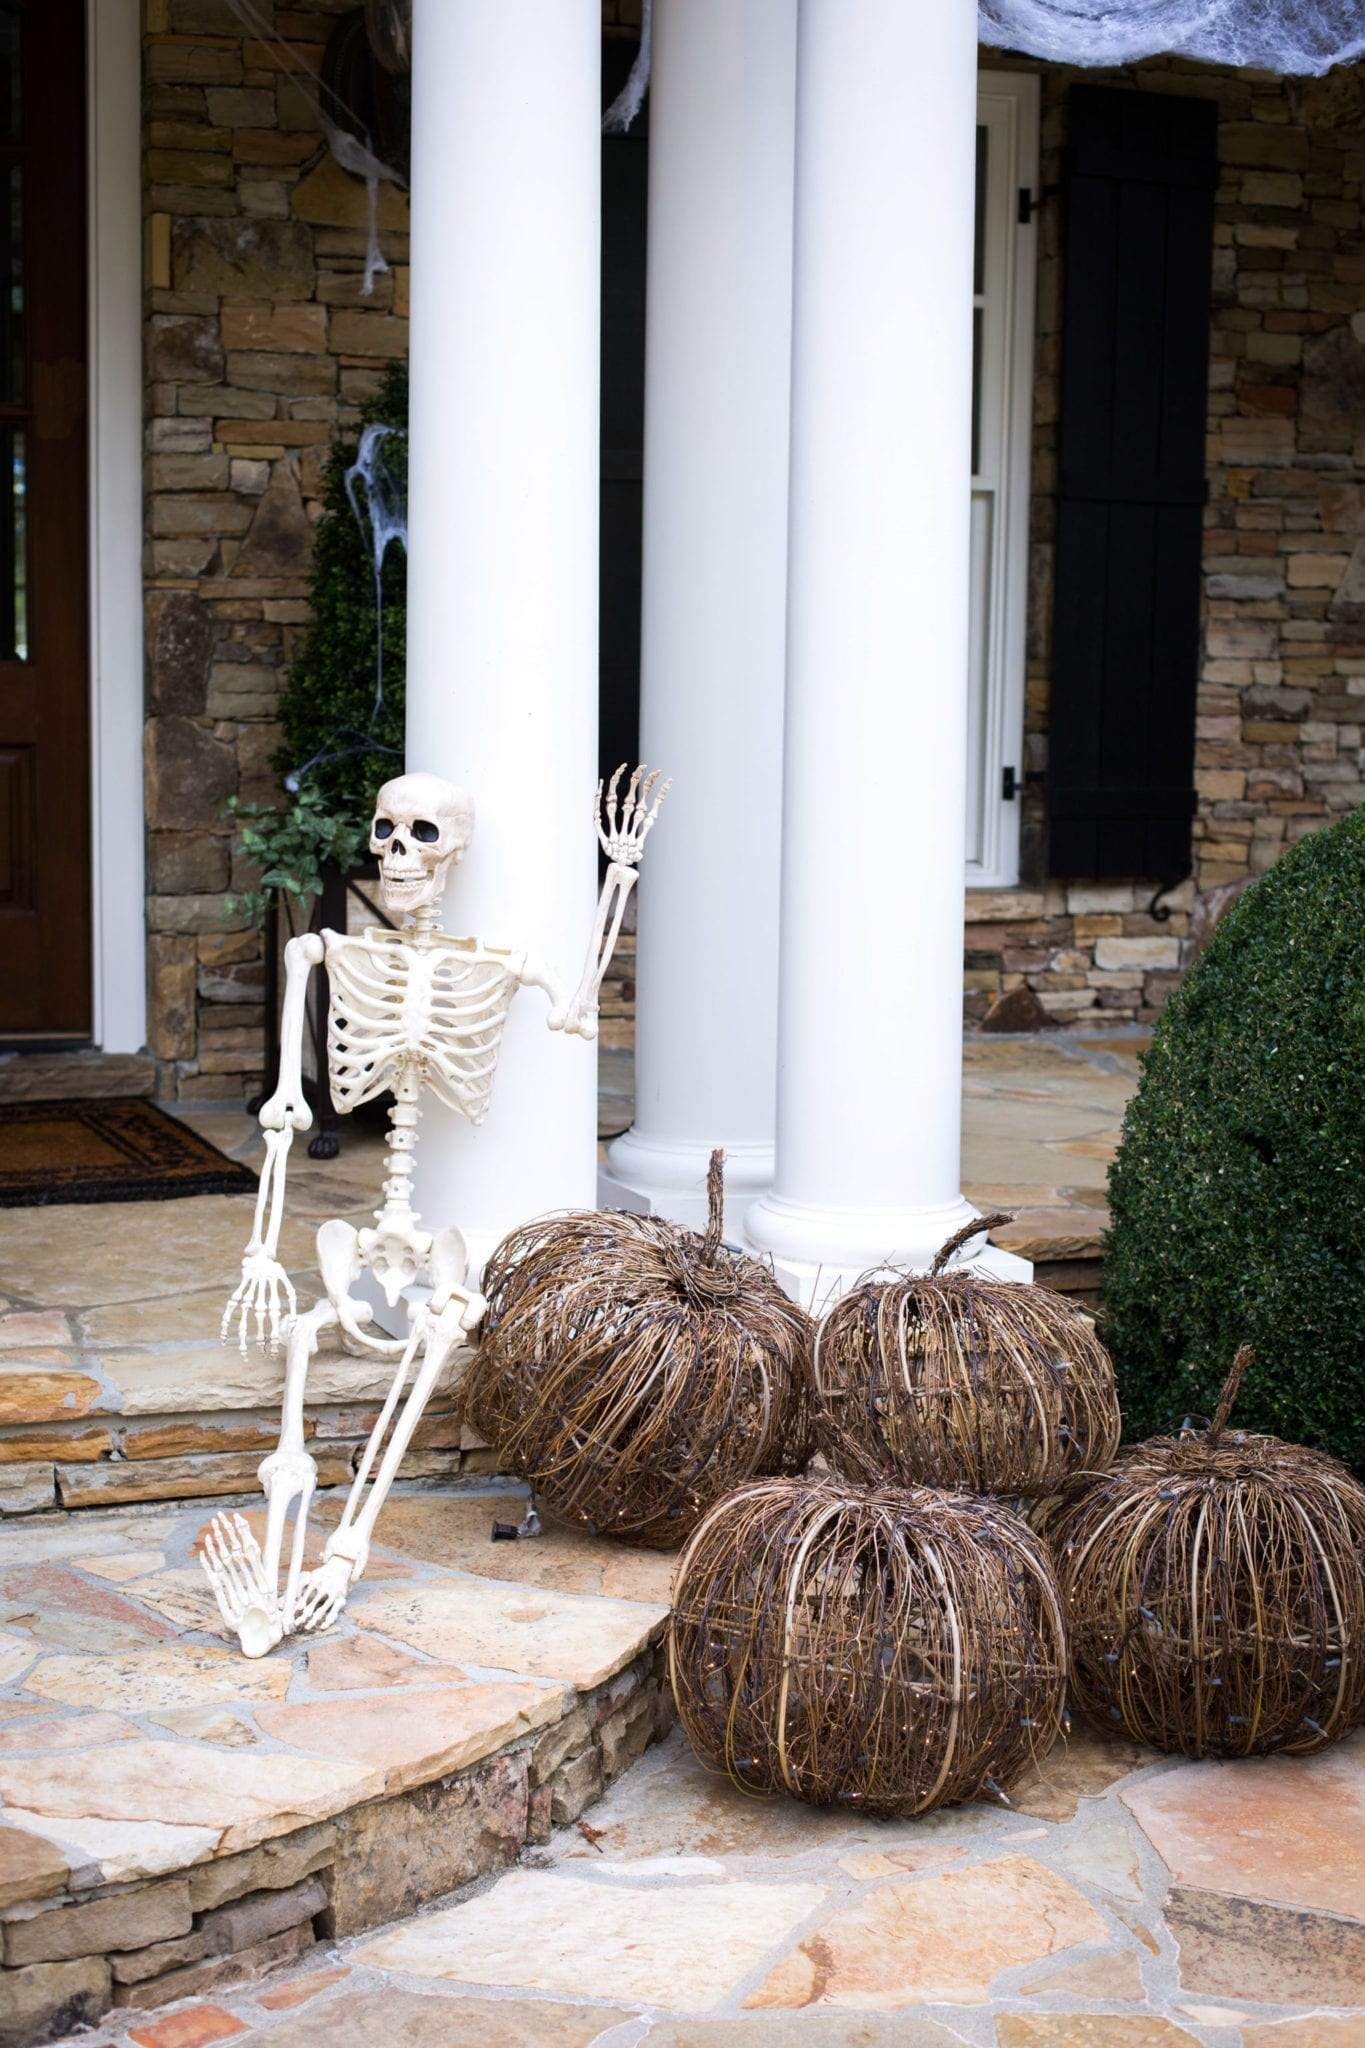 Decorating outside your house for Halloween.